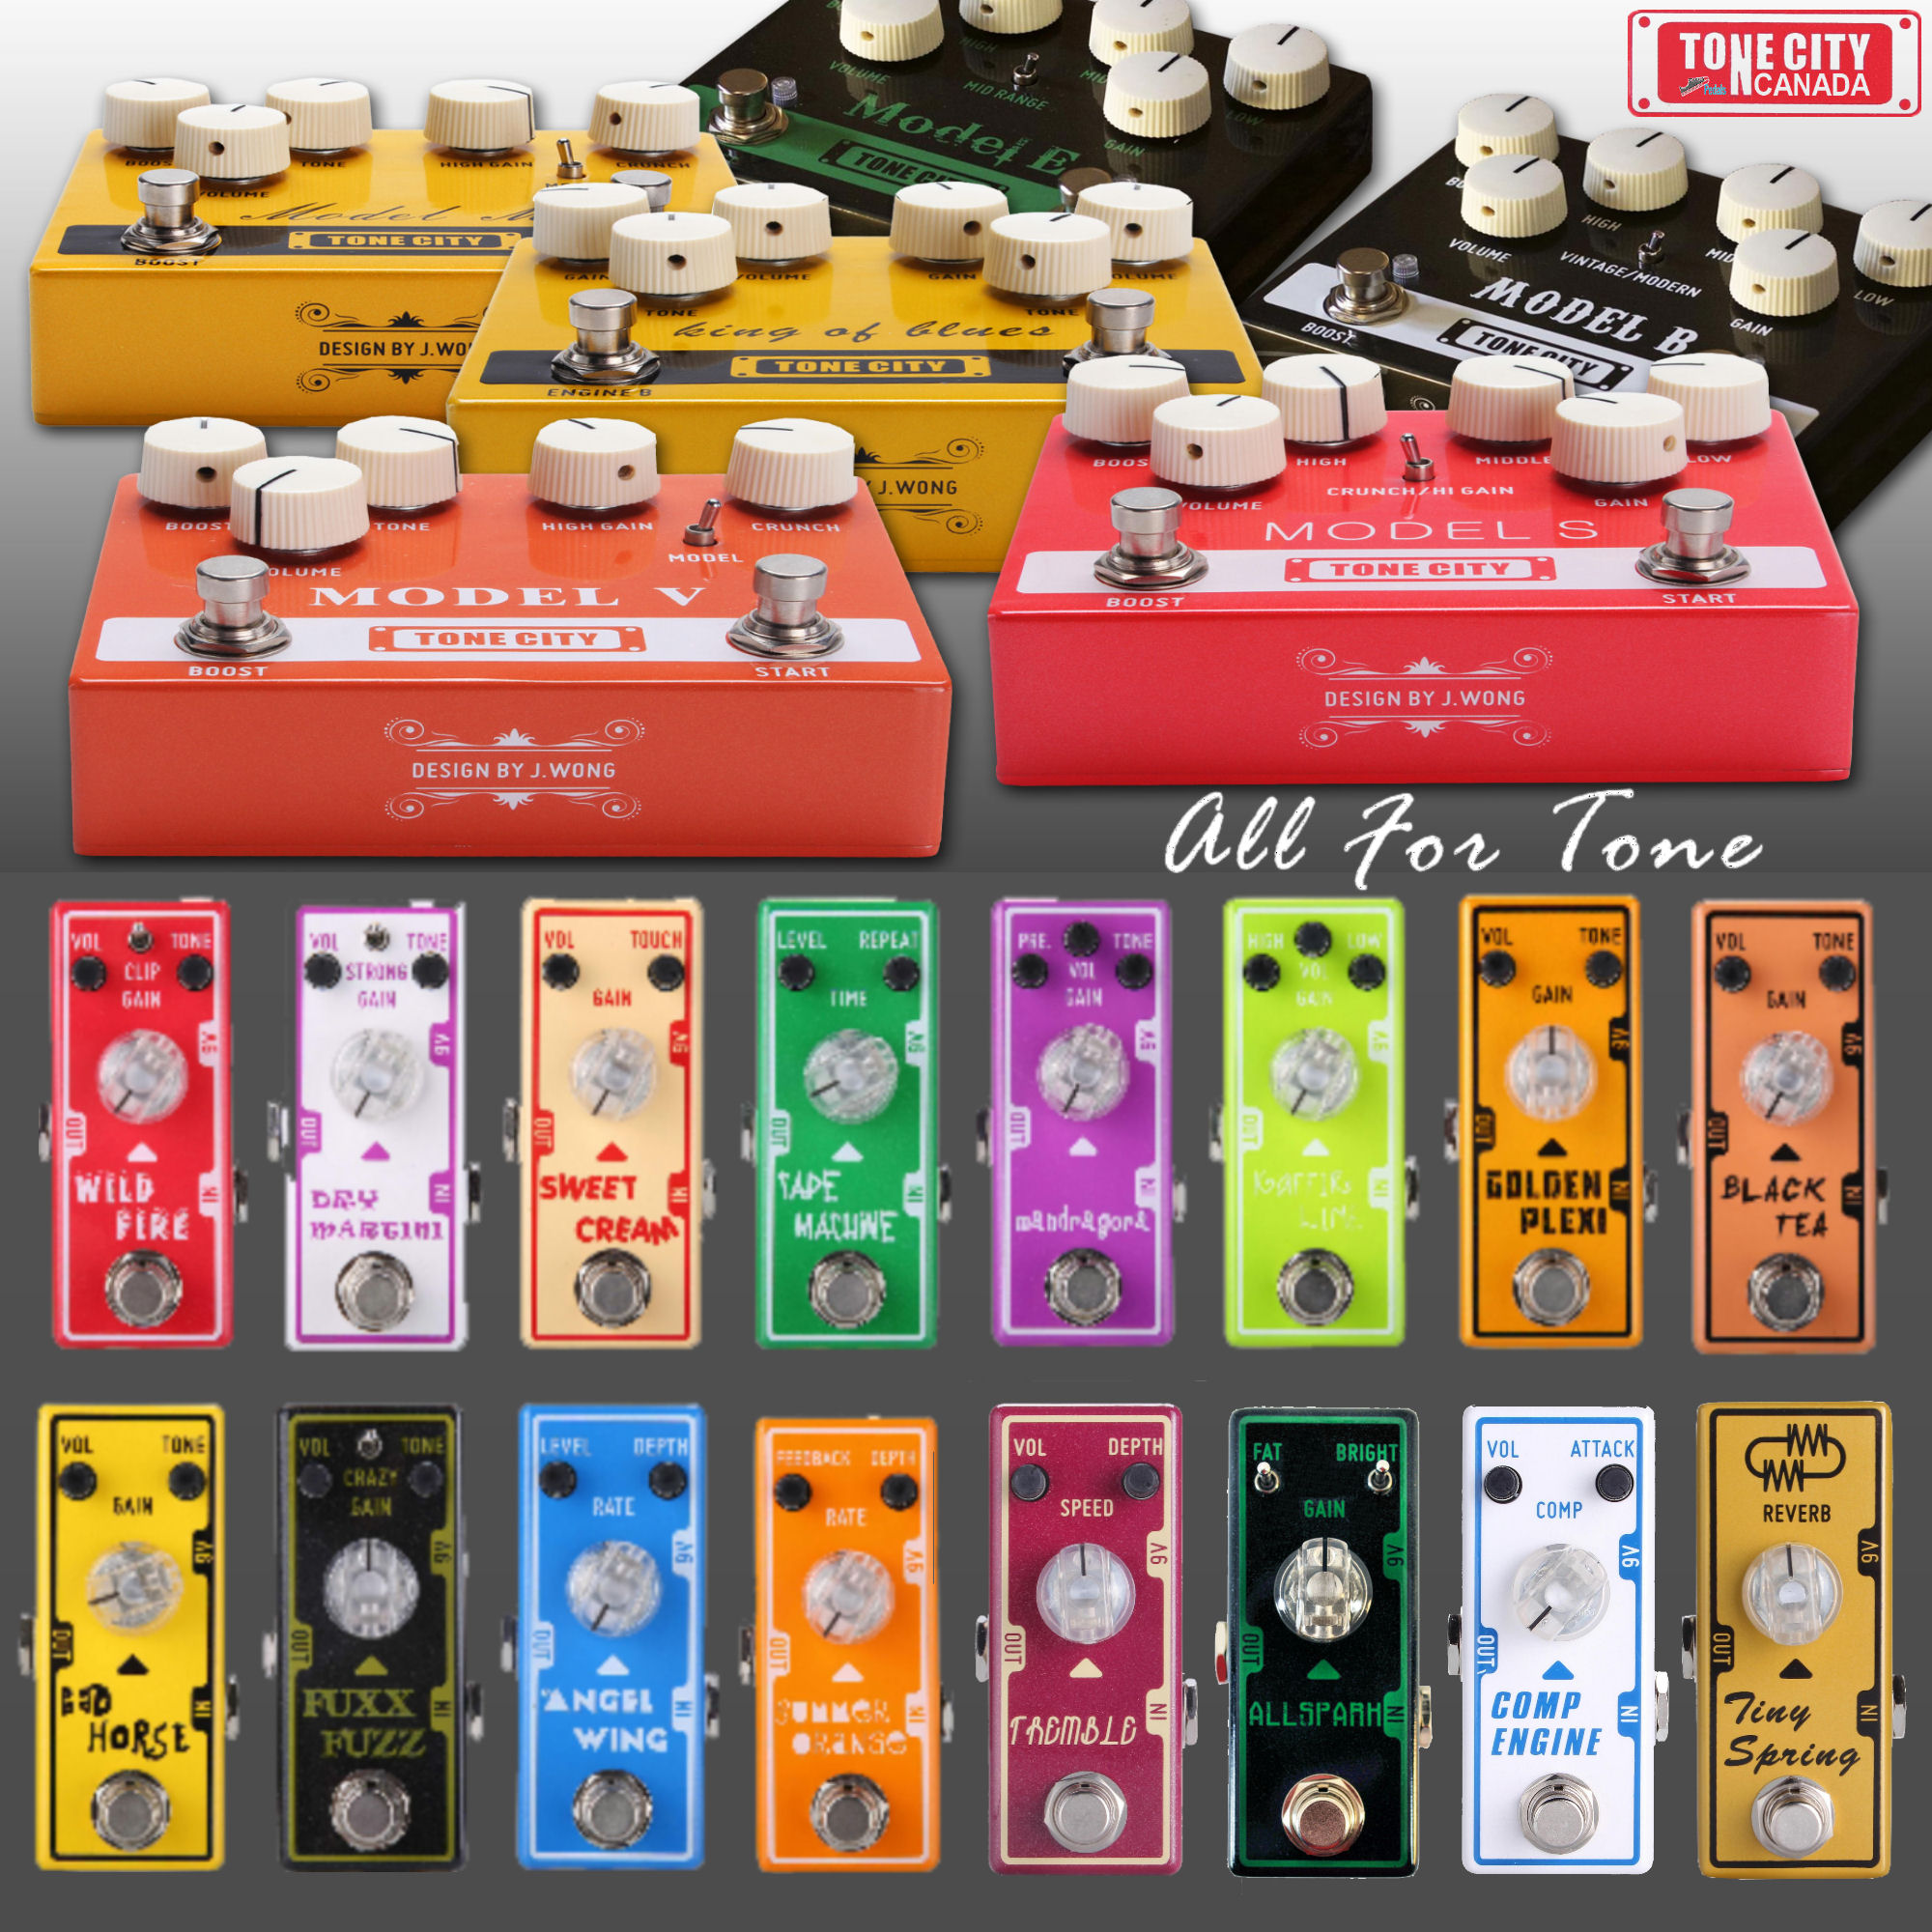 Tone City Comp Engine Compressor Pedal